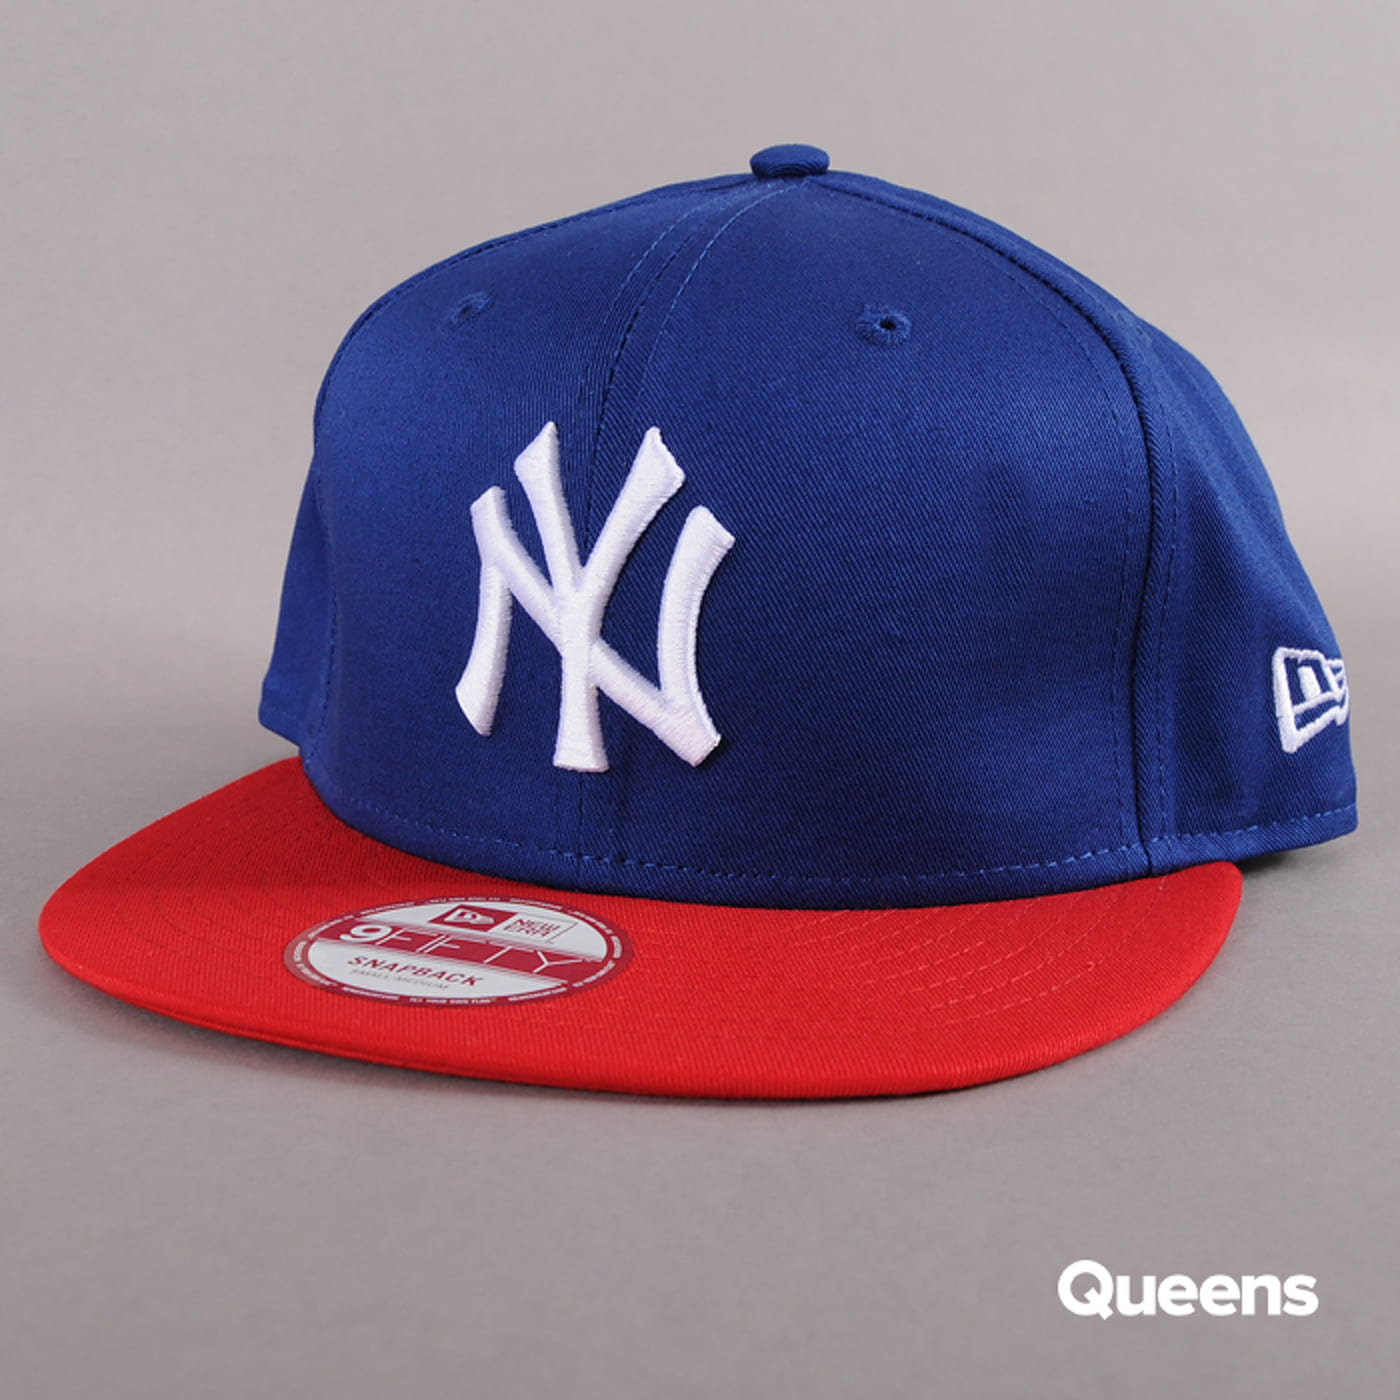 New Era 950 Cotton Block NY dunkelblau / rot / weiß